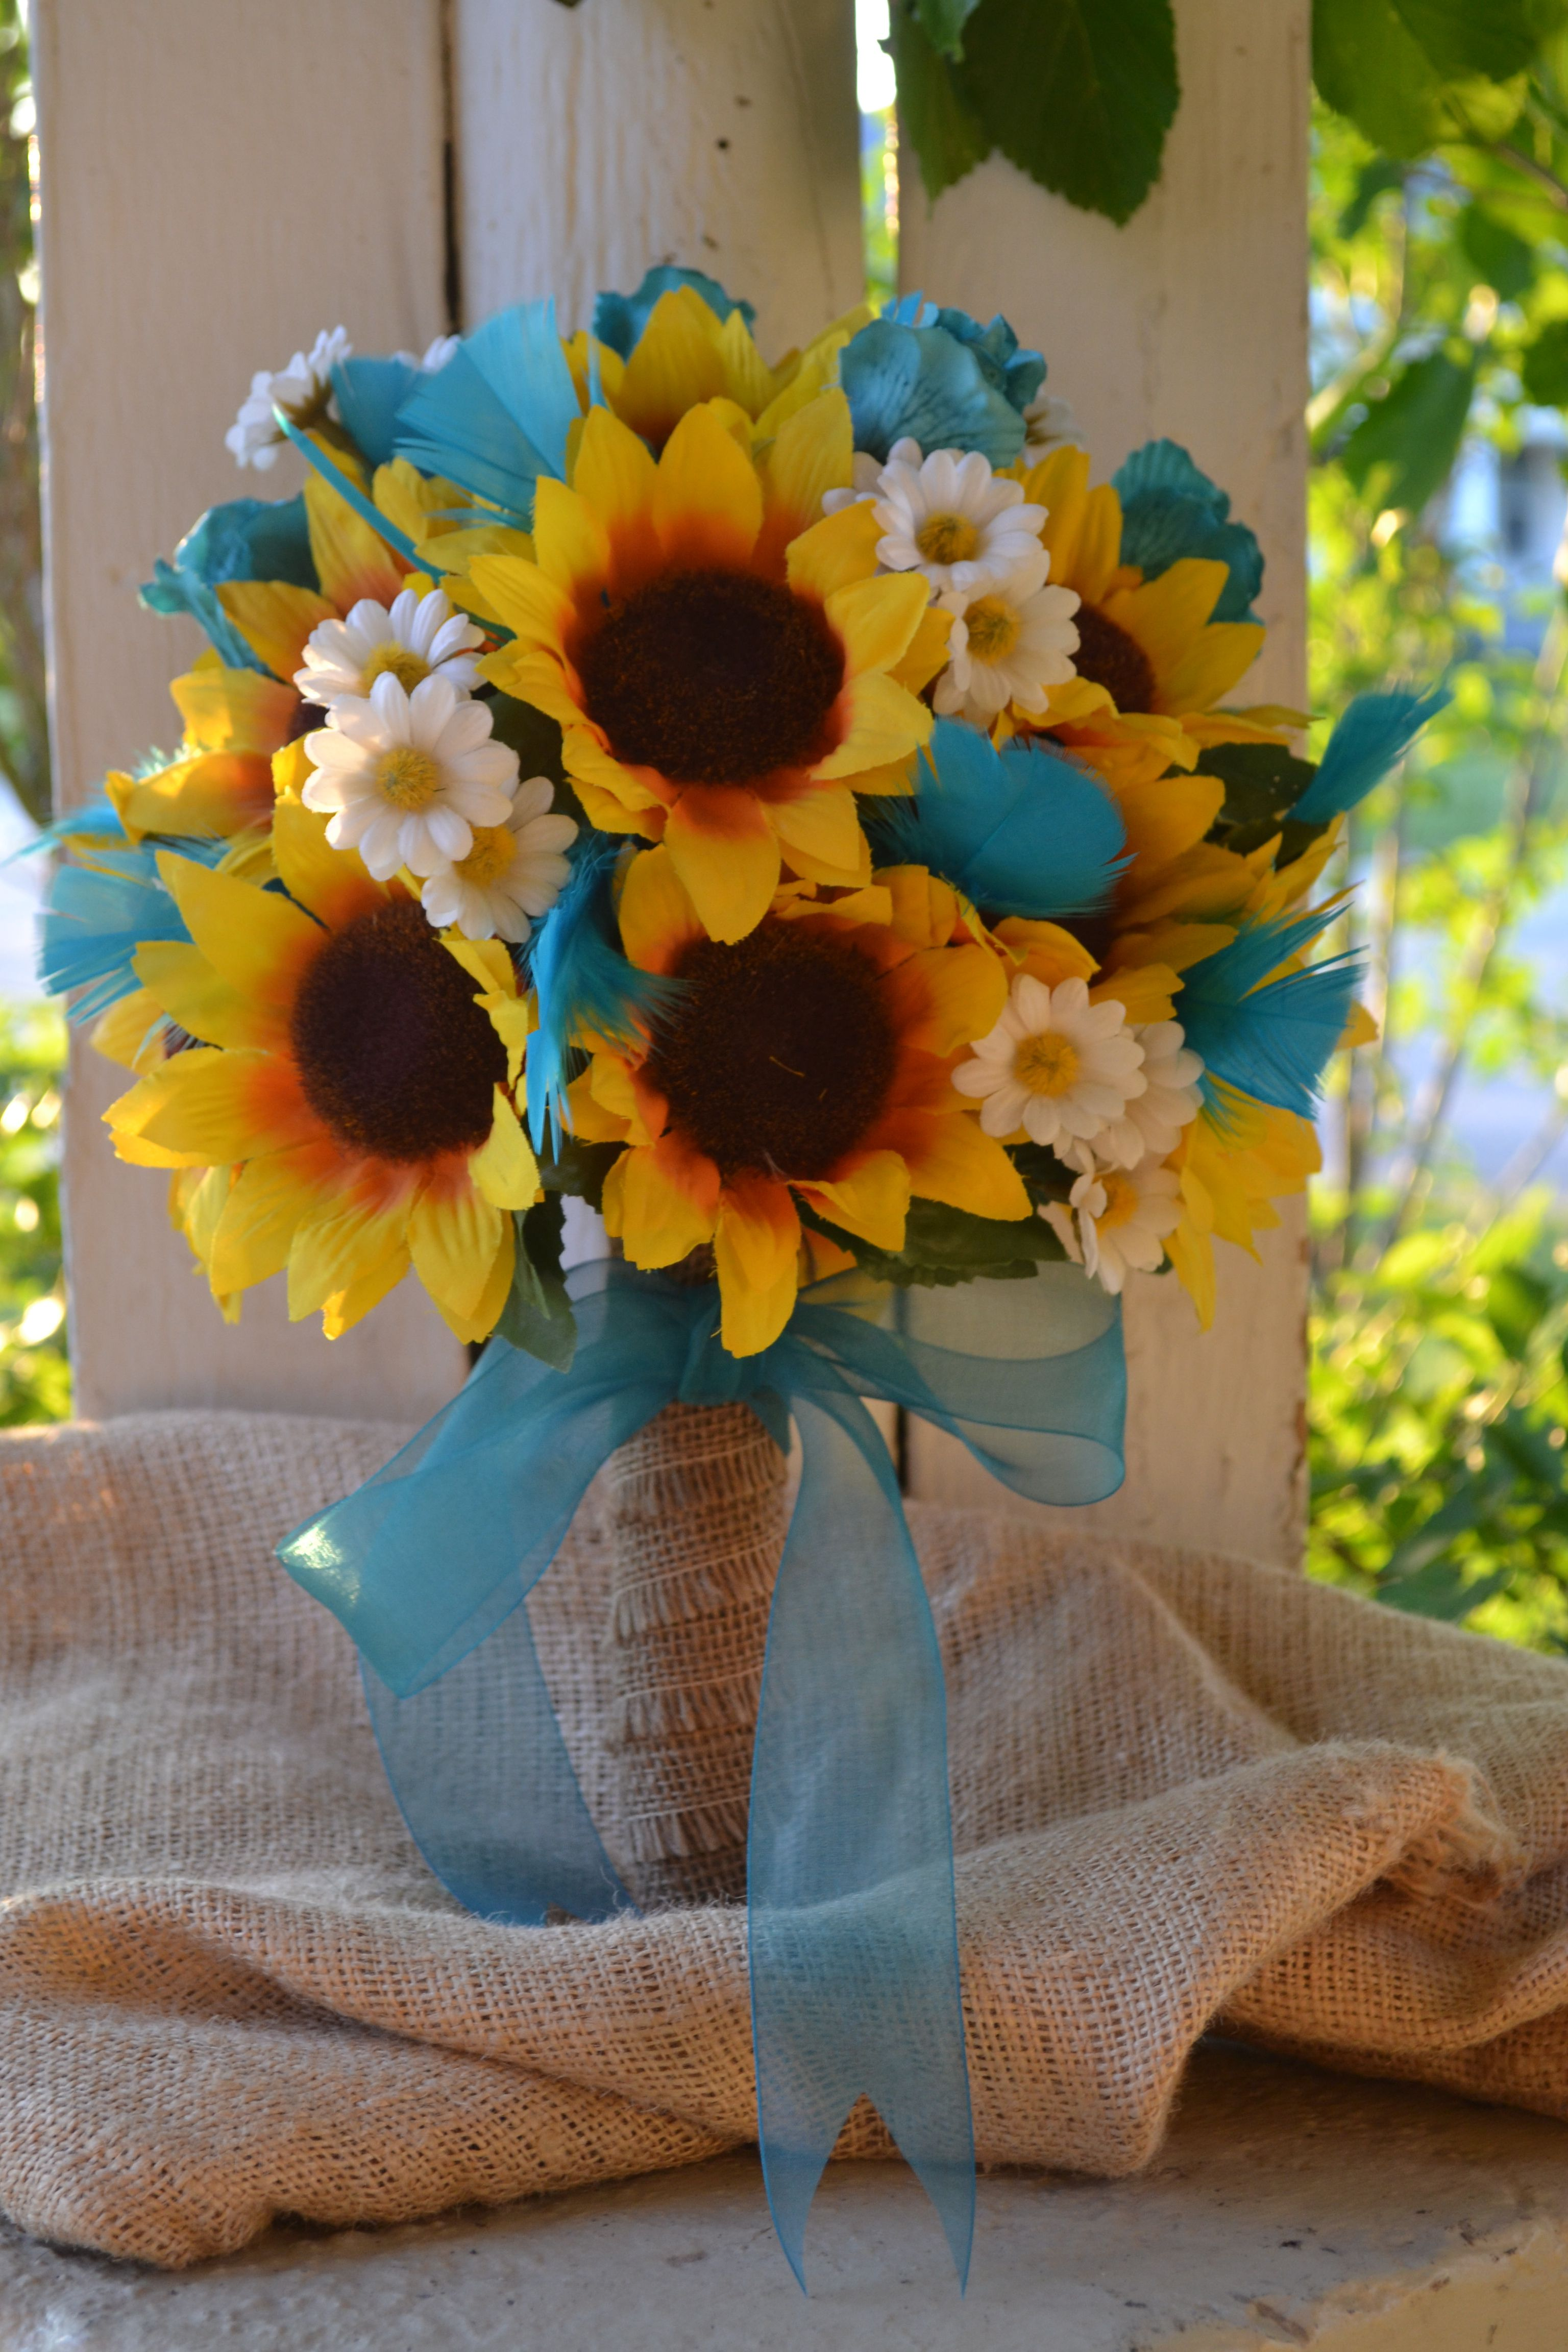 My Day Bouquet - Sunflowers, Turquoise Rose Buds ...